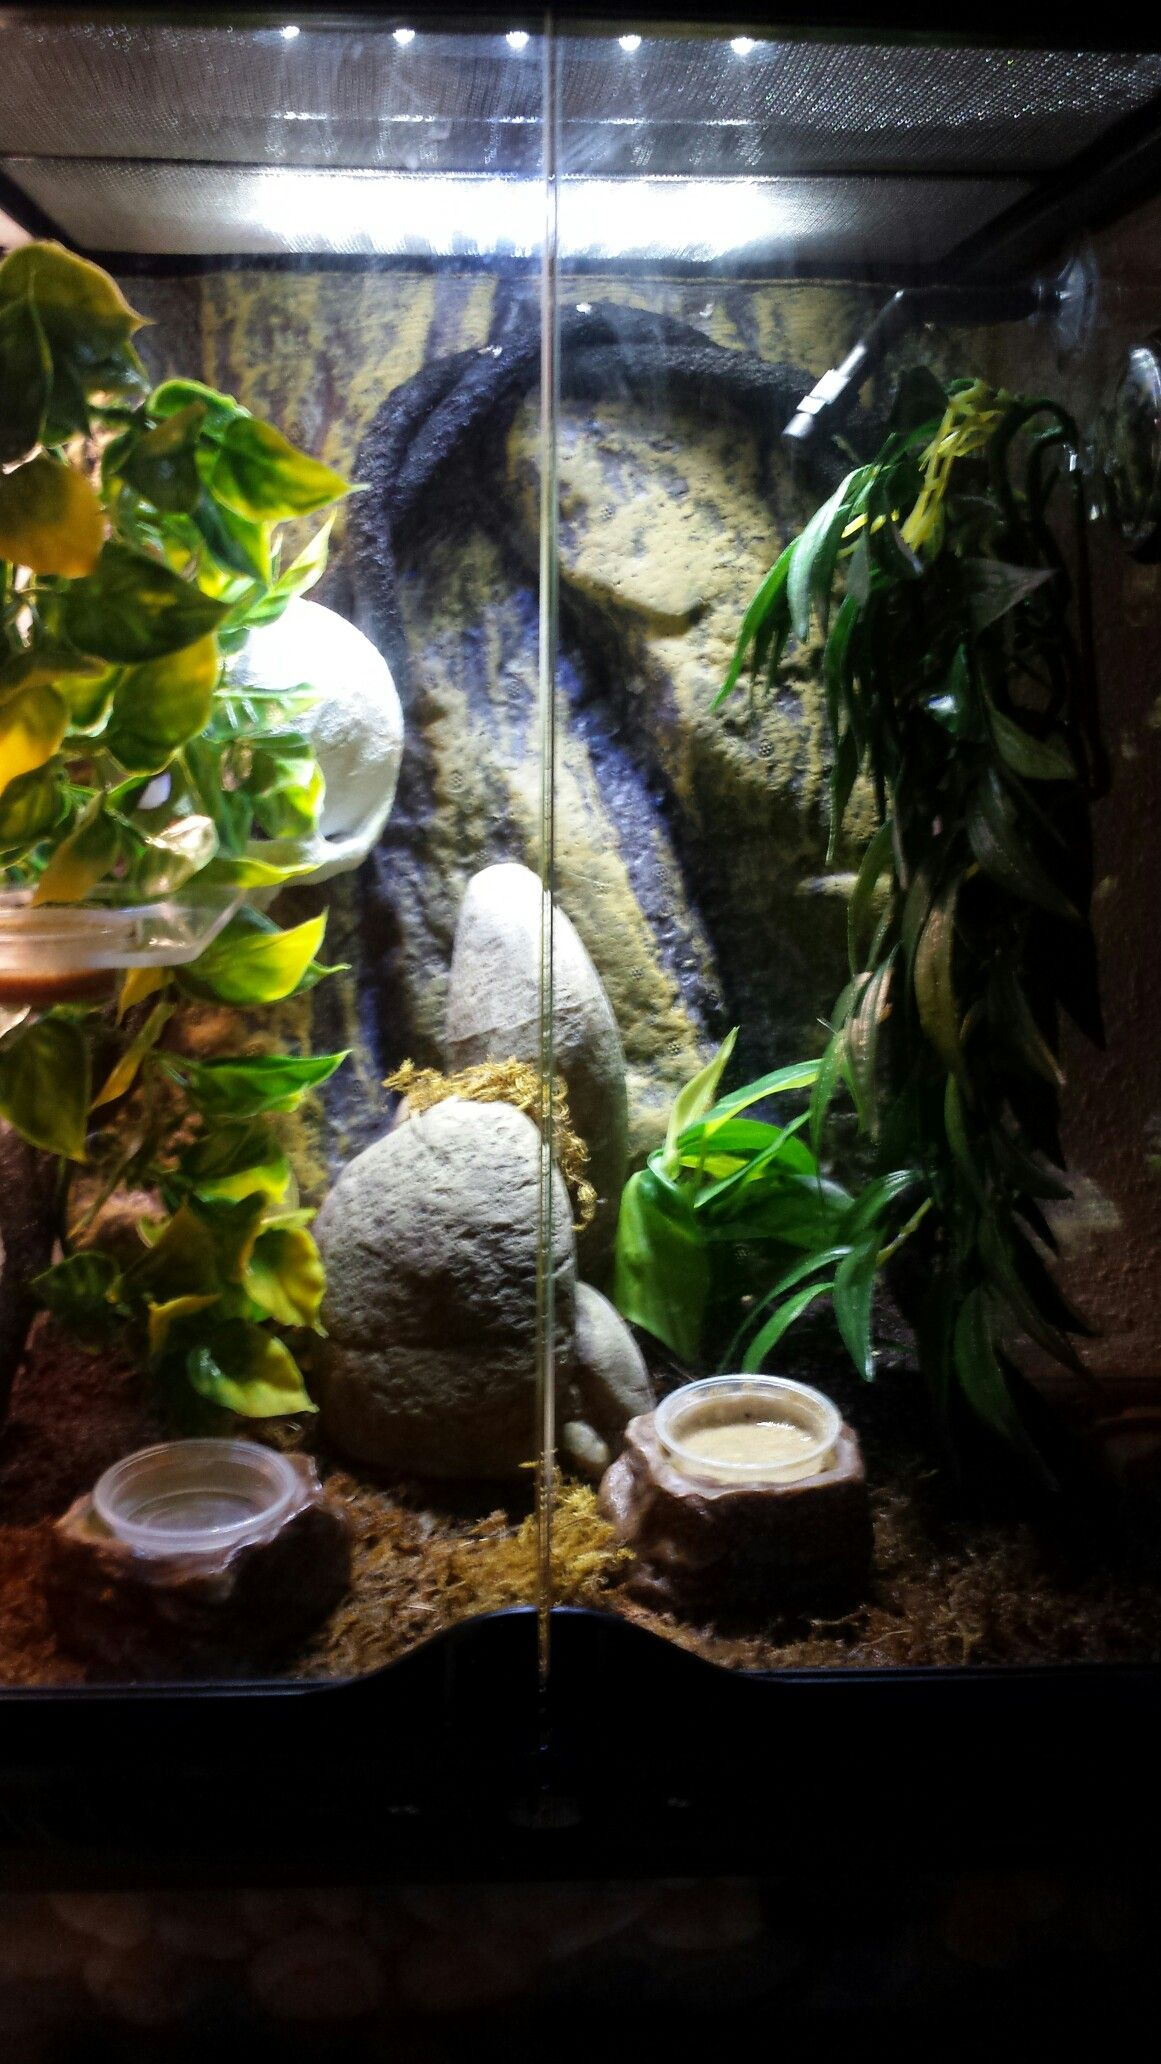 crested gecko habitat repti pinterest crested gecko geckos and reptiles. Black Bedroom Furniture Sets. Home Design Ideas